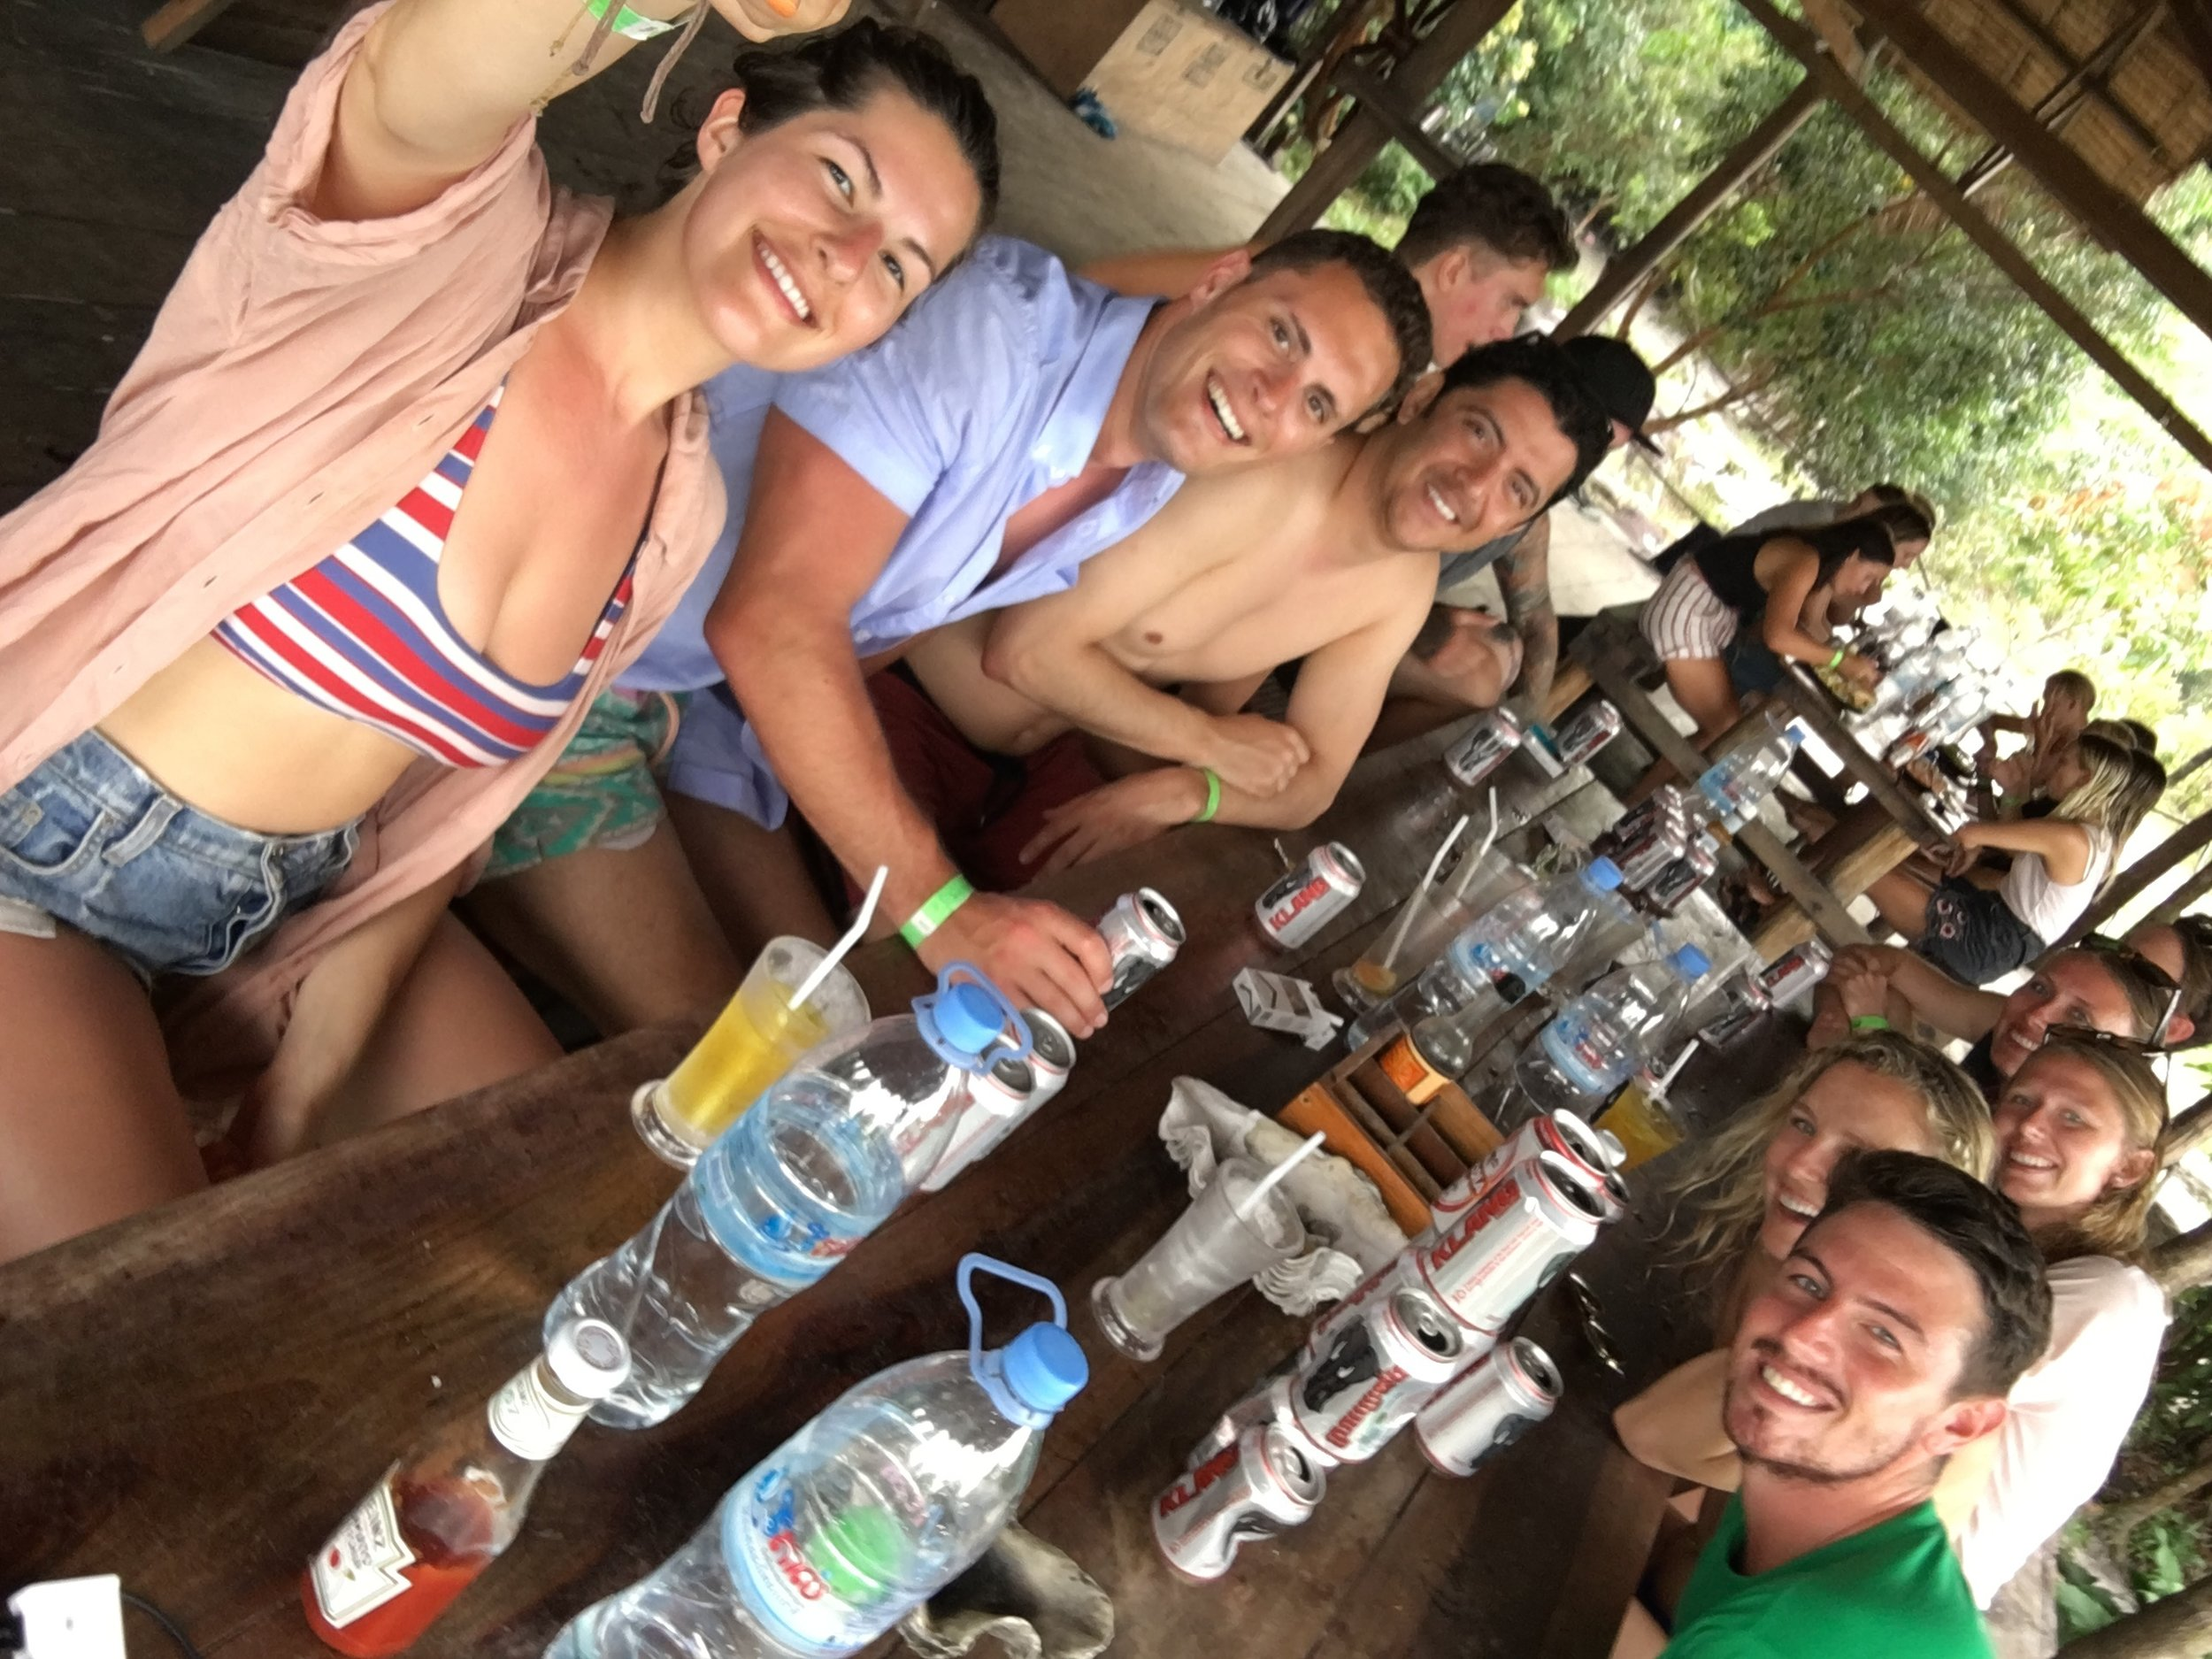 Example of an outfit win and a pharma fail on Koh Rong. Bikini + shorts + light button down = good. Island sun + no aloe vera gel = bad.